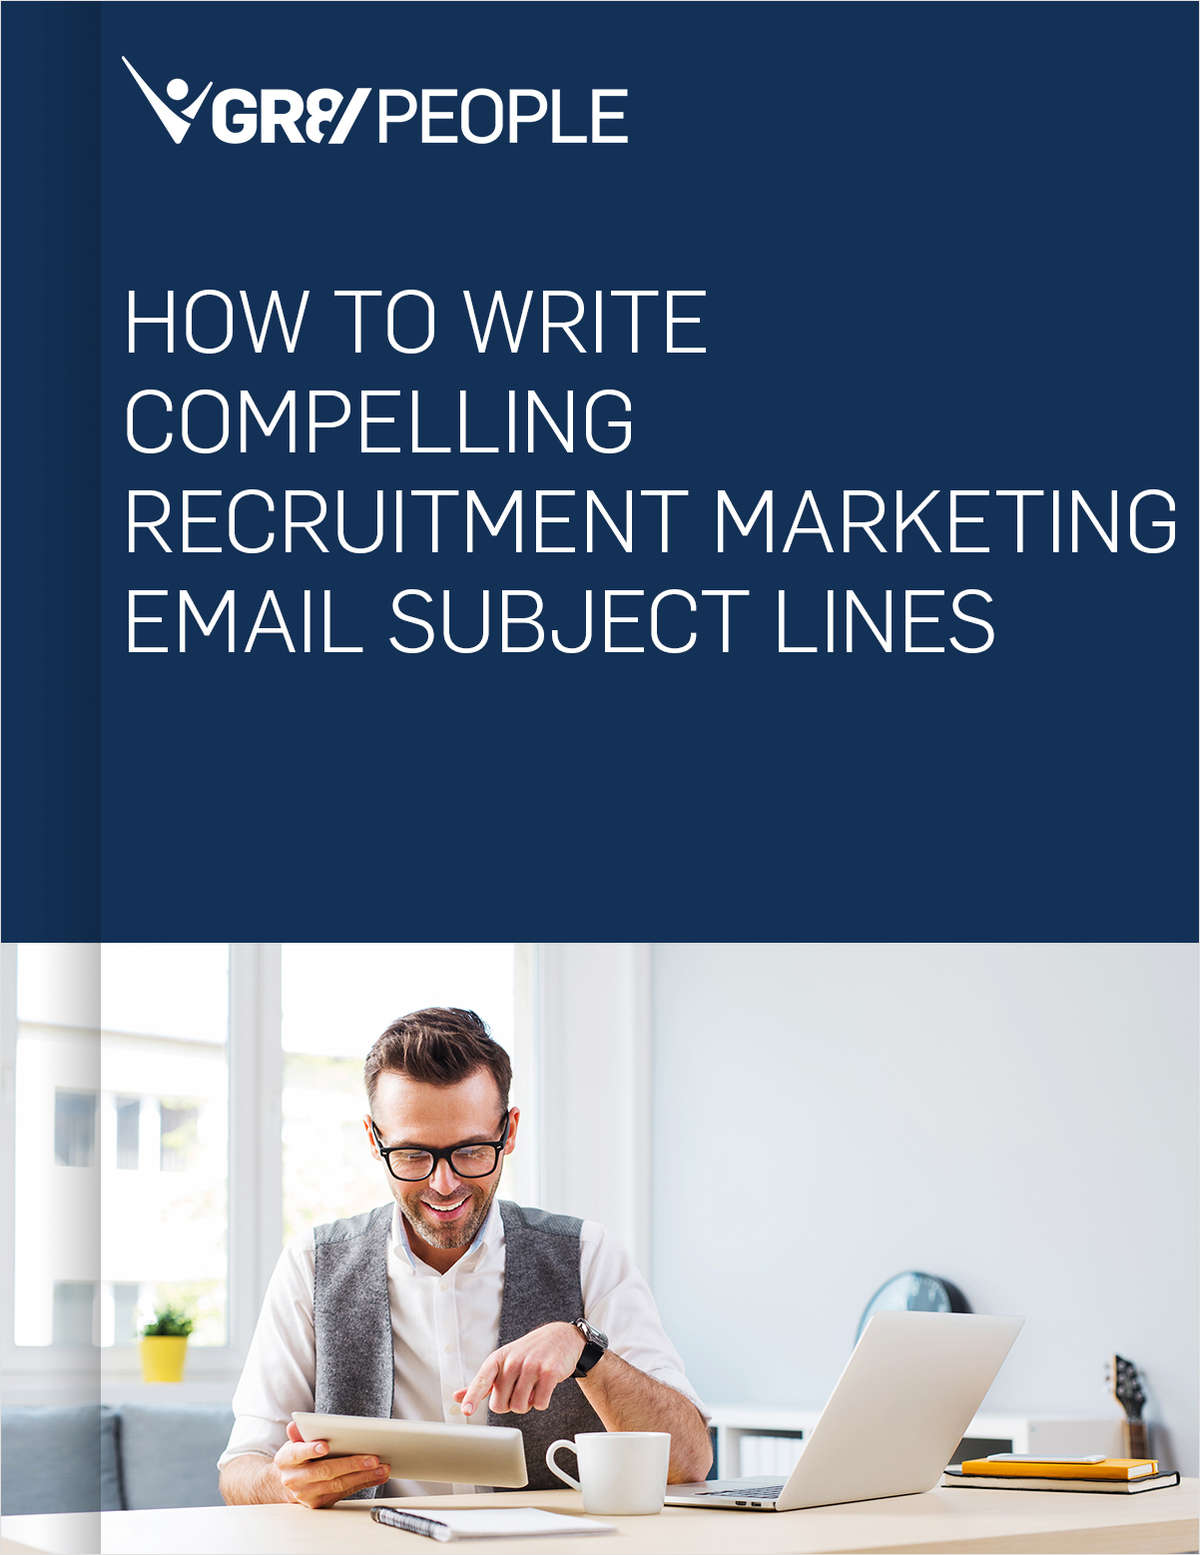 How to Write Compelling Recruitment Marketing Email Subject Lines